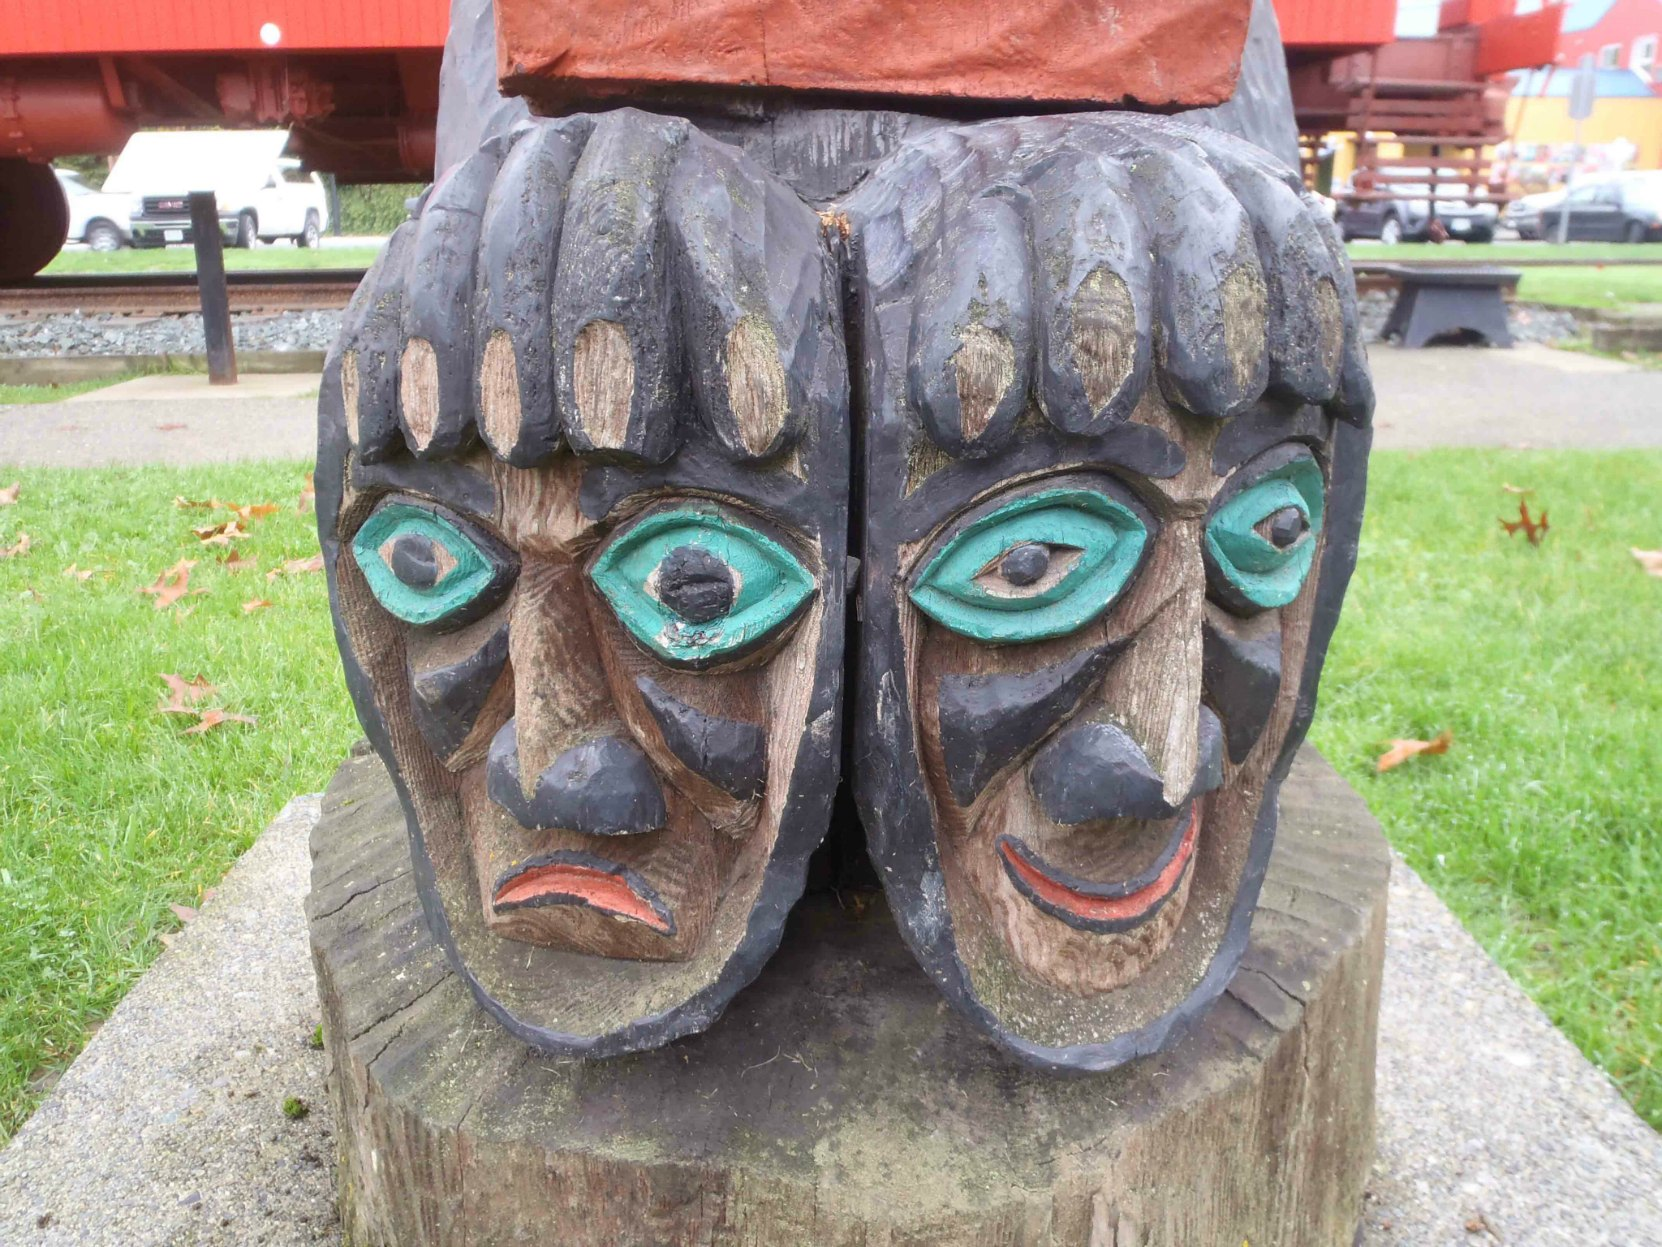 The Pole of Wealth, Bear figure, feet detail, Canada Avenue, Duncan